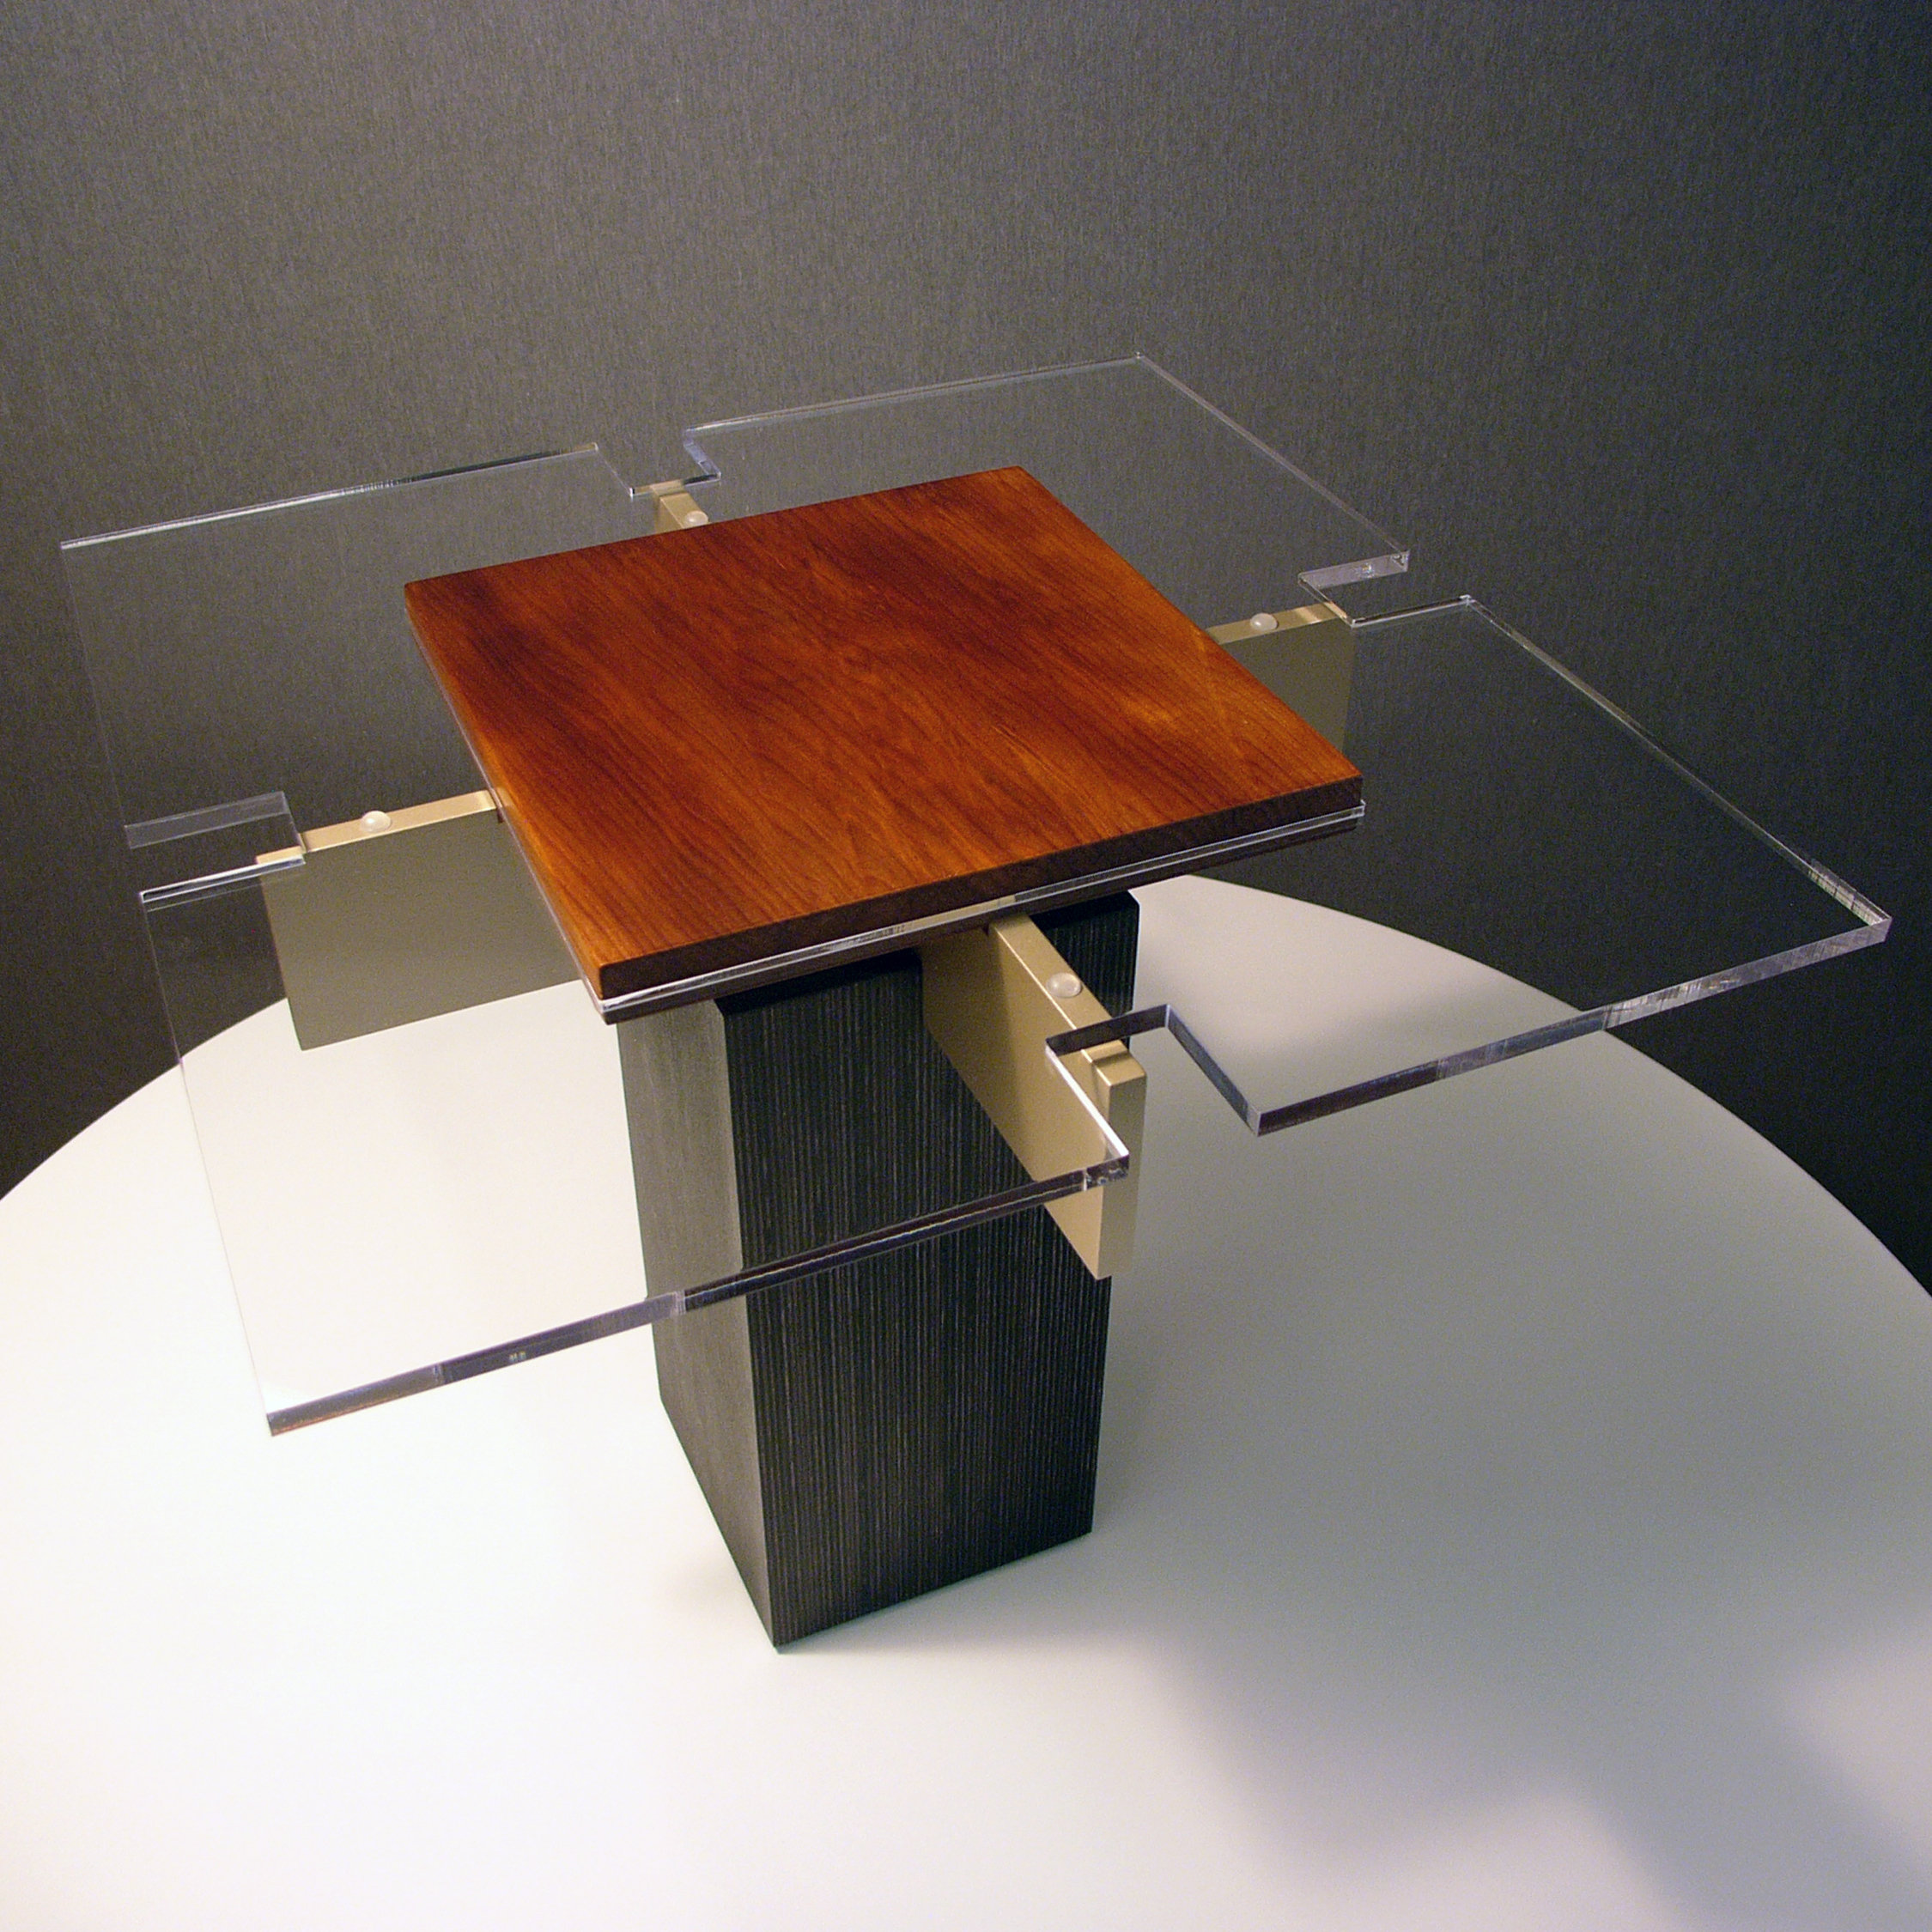 Glass Coffee Tables New Zealand: Kauri Wood Table By John Nalevanko (Wood Side Table